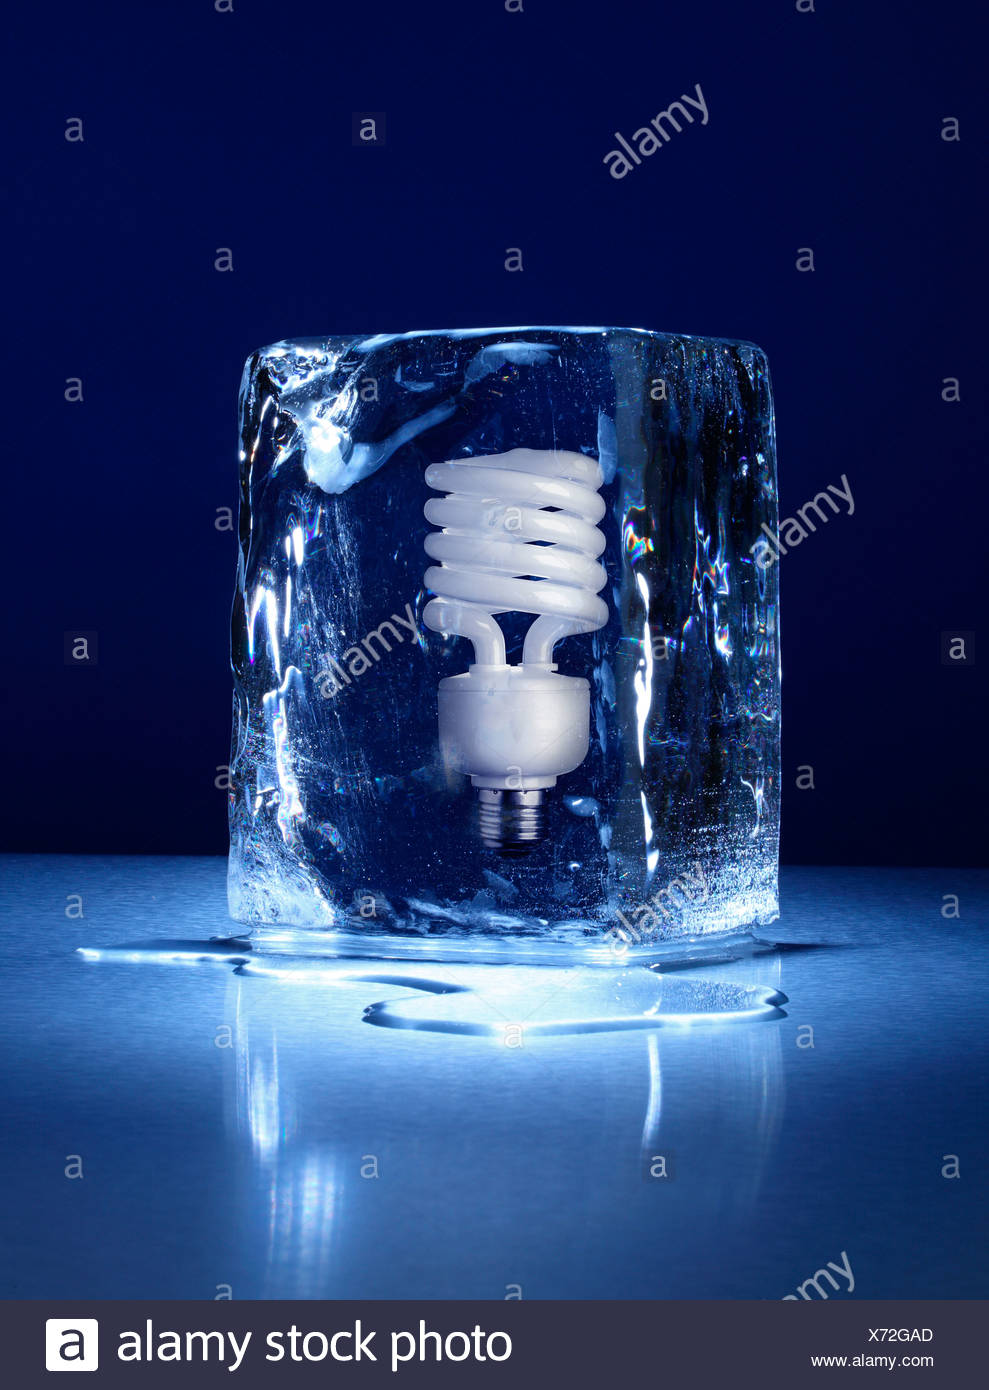 large block of ice with a compact light bulb frozen inside stock